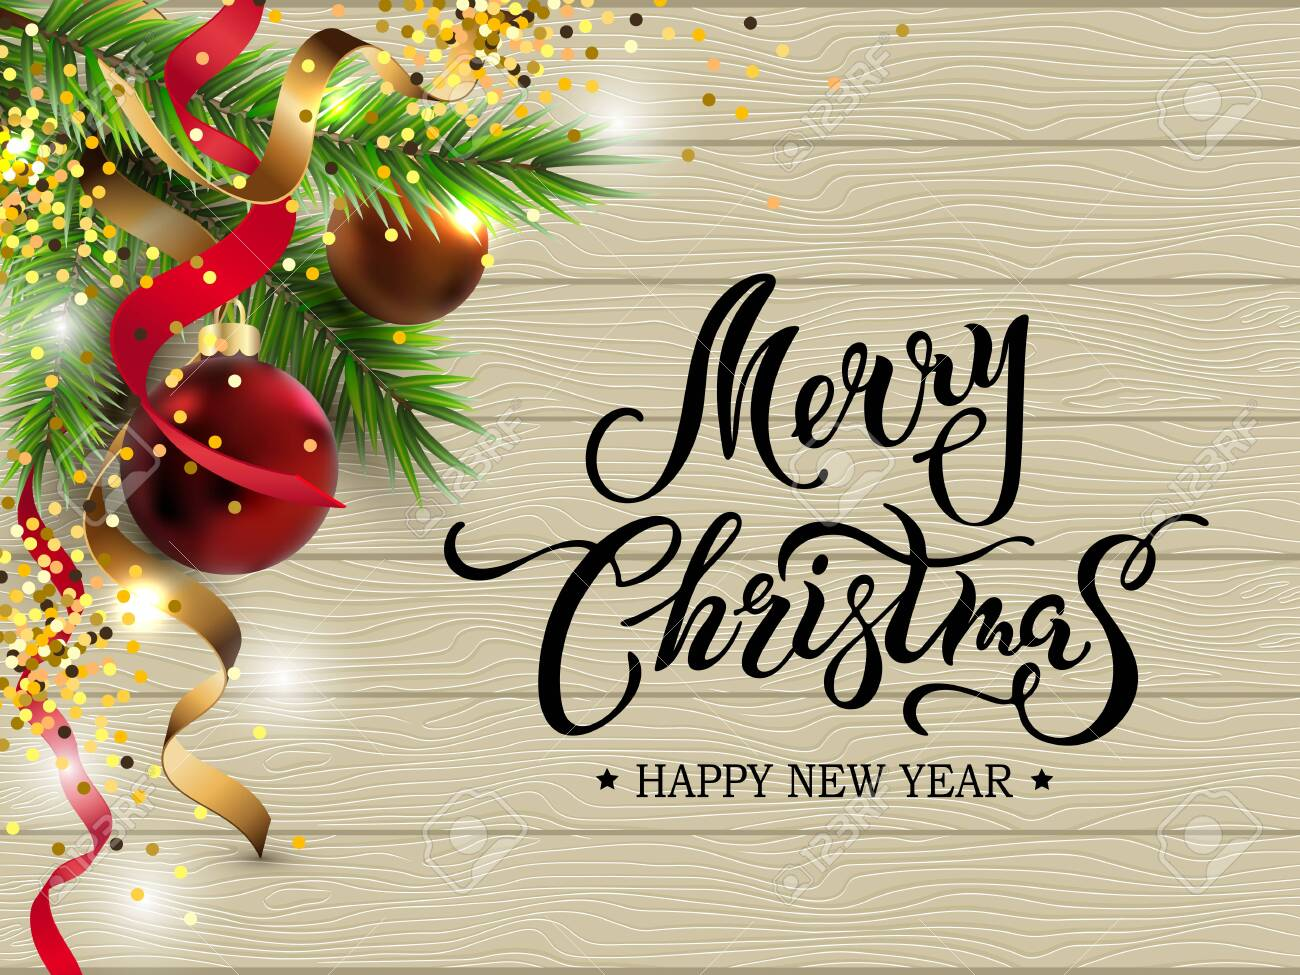 merry christmas happy new year card with fir tree red and golden royalty free cliparts vectors and stock illustration image 130330161 merry christmas happy new year card with fir tree red and golden